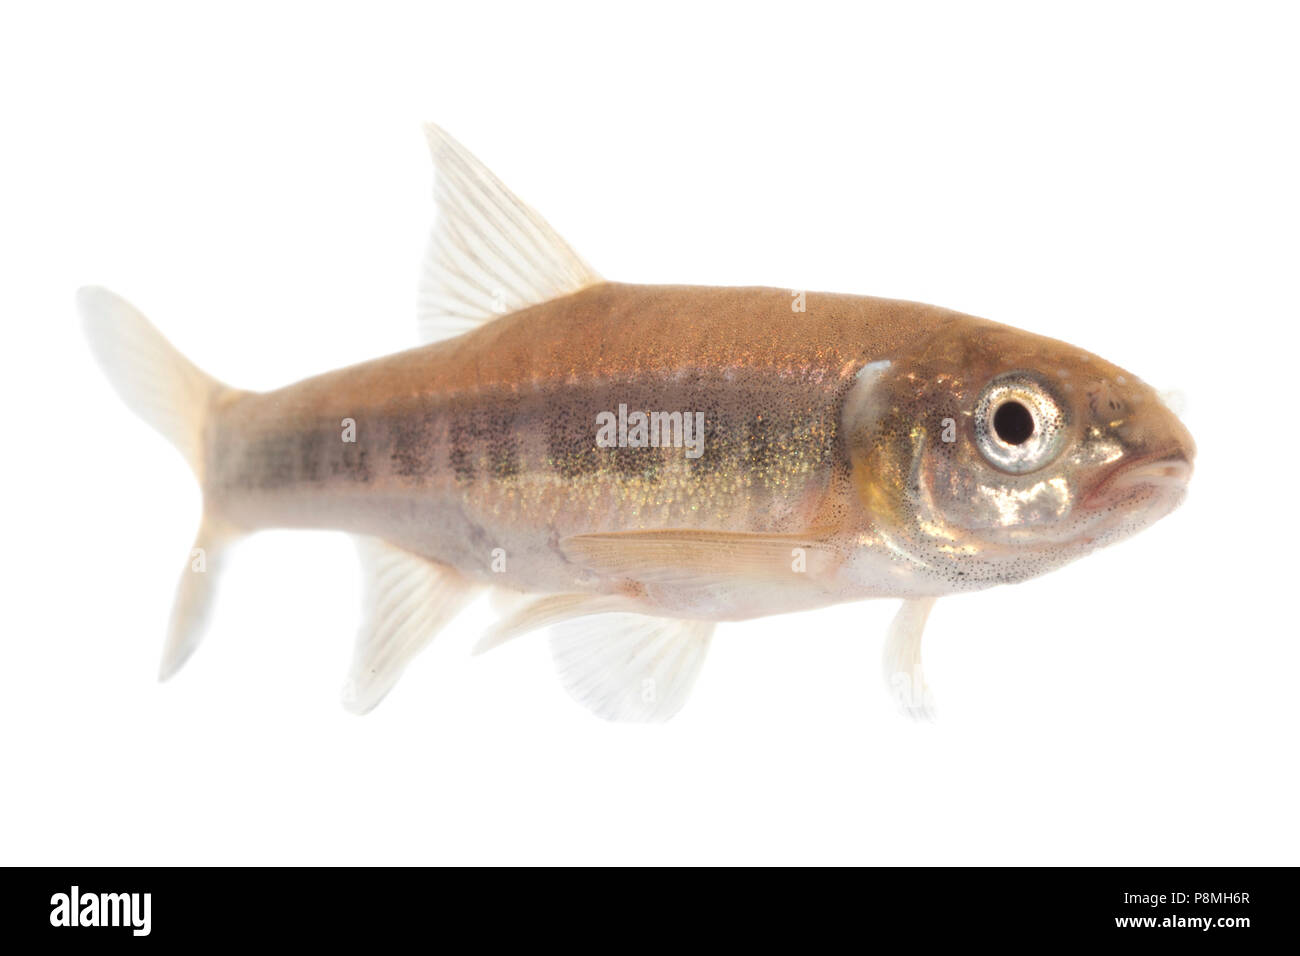 Minnow isolated against a white background Stock Photo